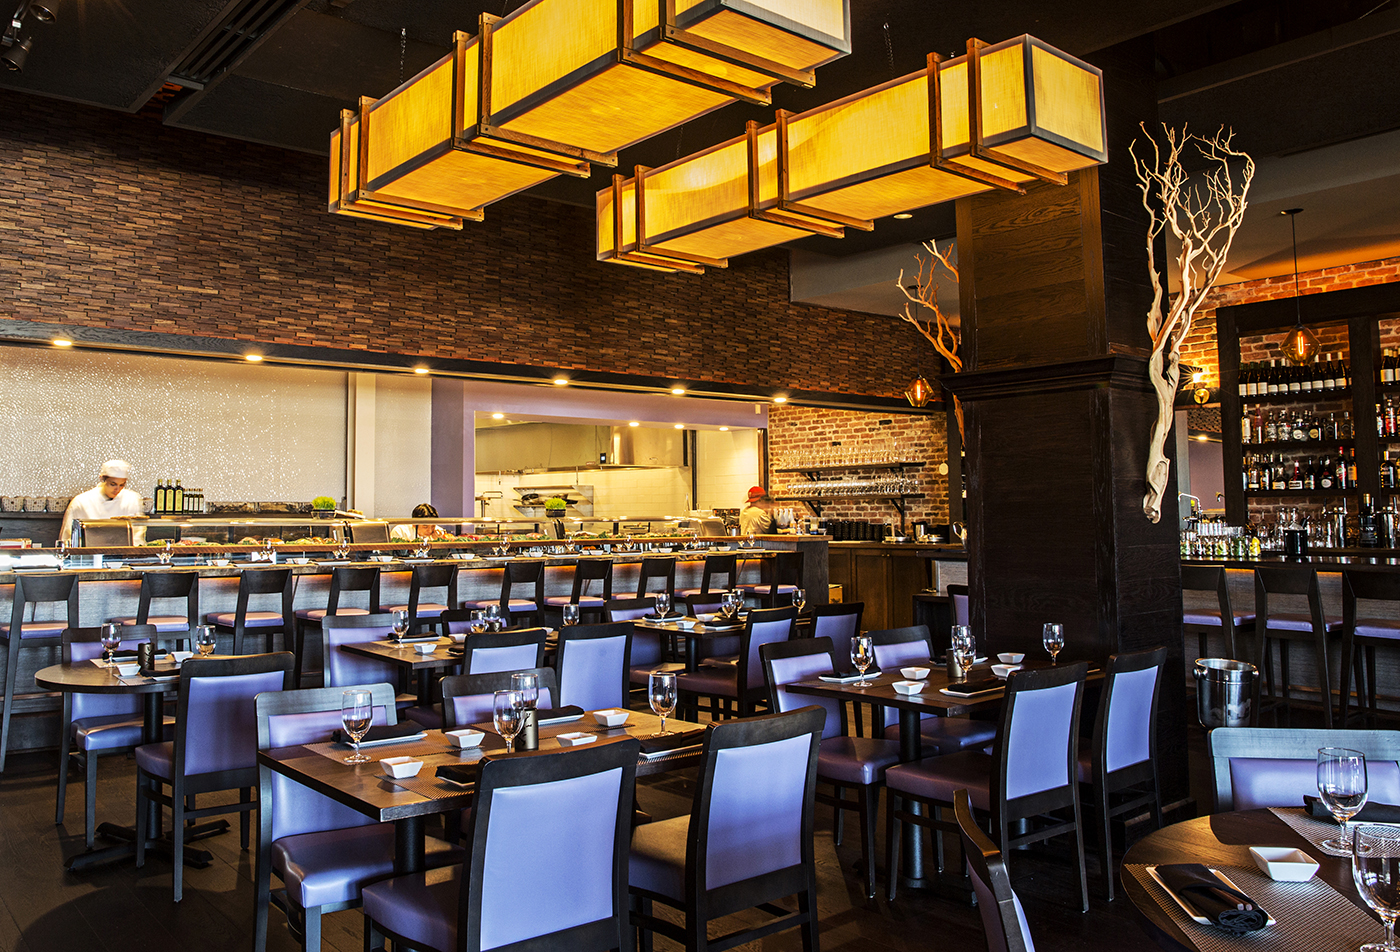 This Chic Westside Spin Off Of A Charleston Original Delivers Anese Dishes With Southern Flair Serving Both Traditional And Novel Sushi Along